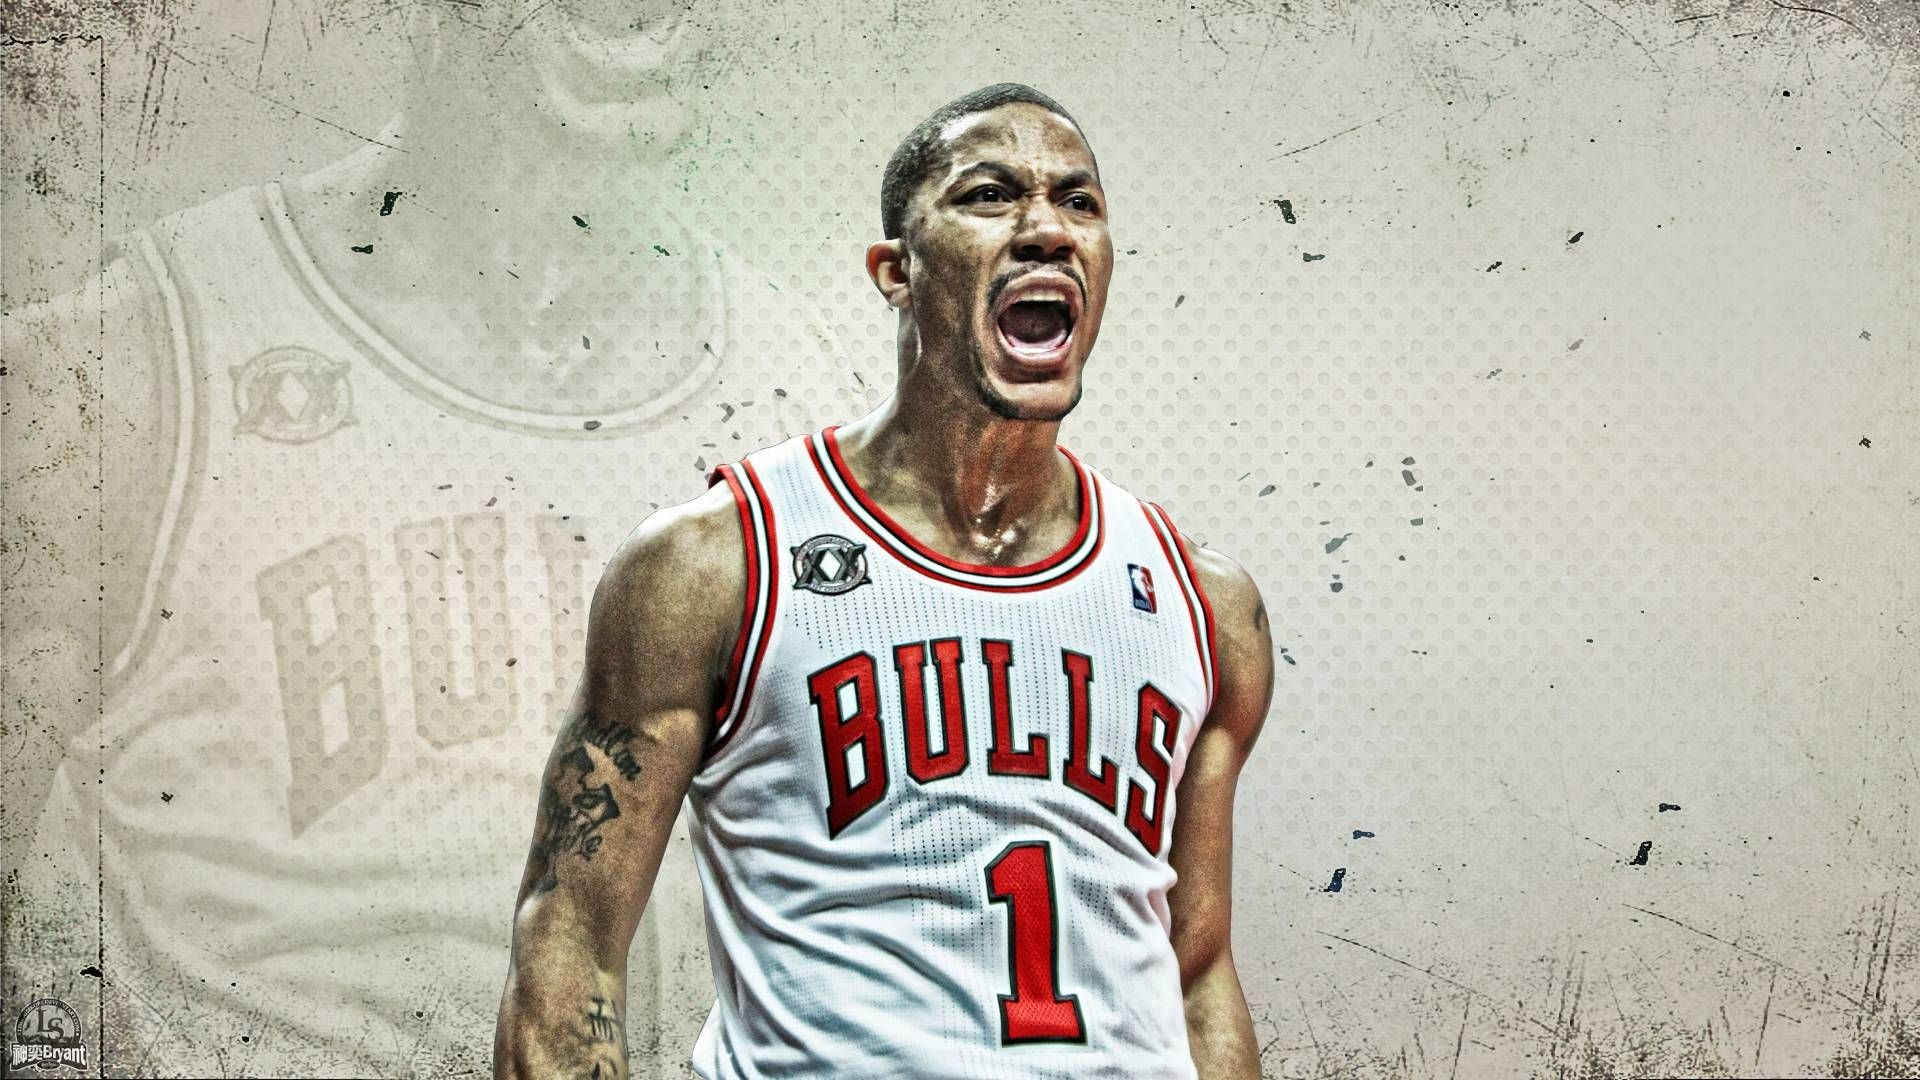 1920x1080 Derrick Rose Wallpapers HD 2016